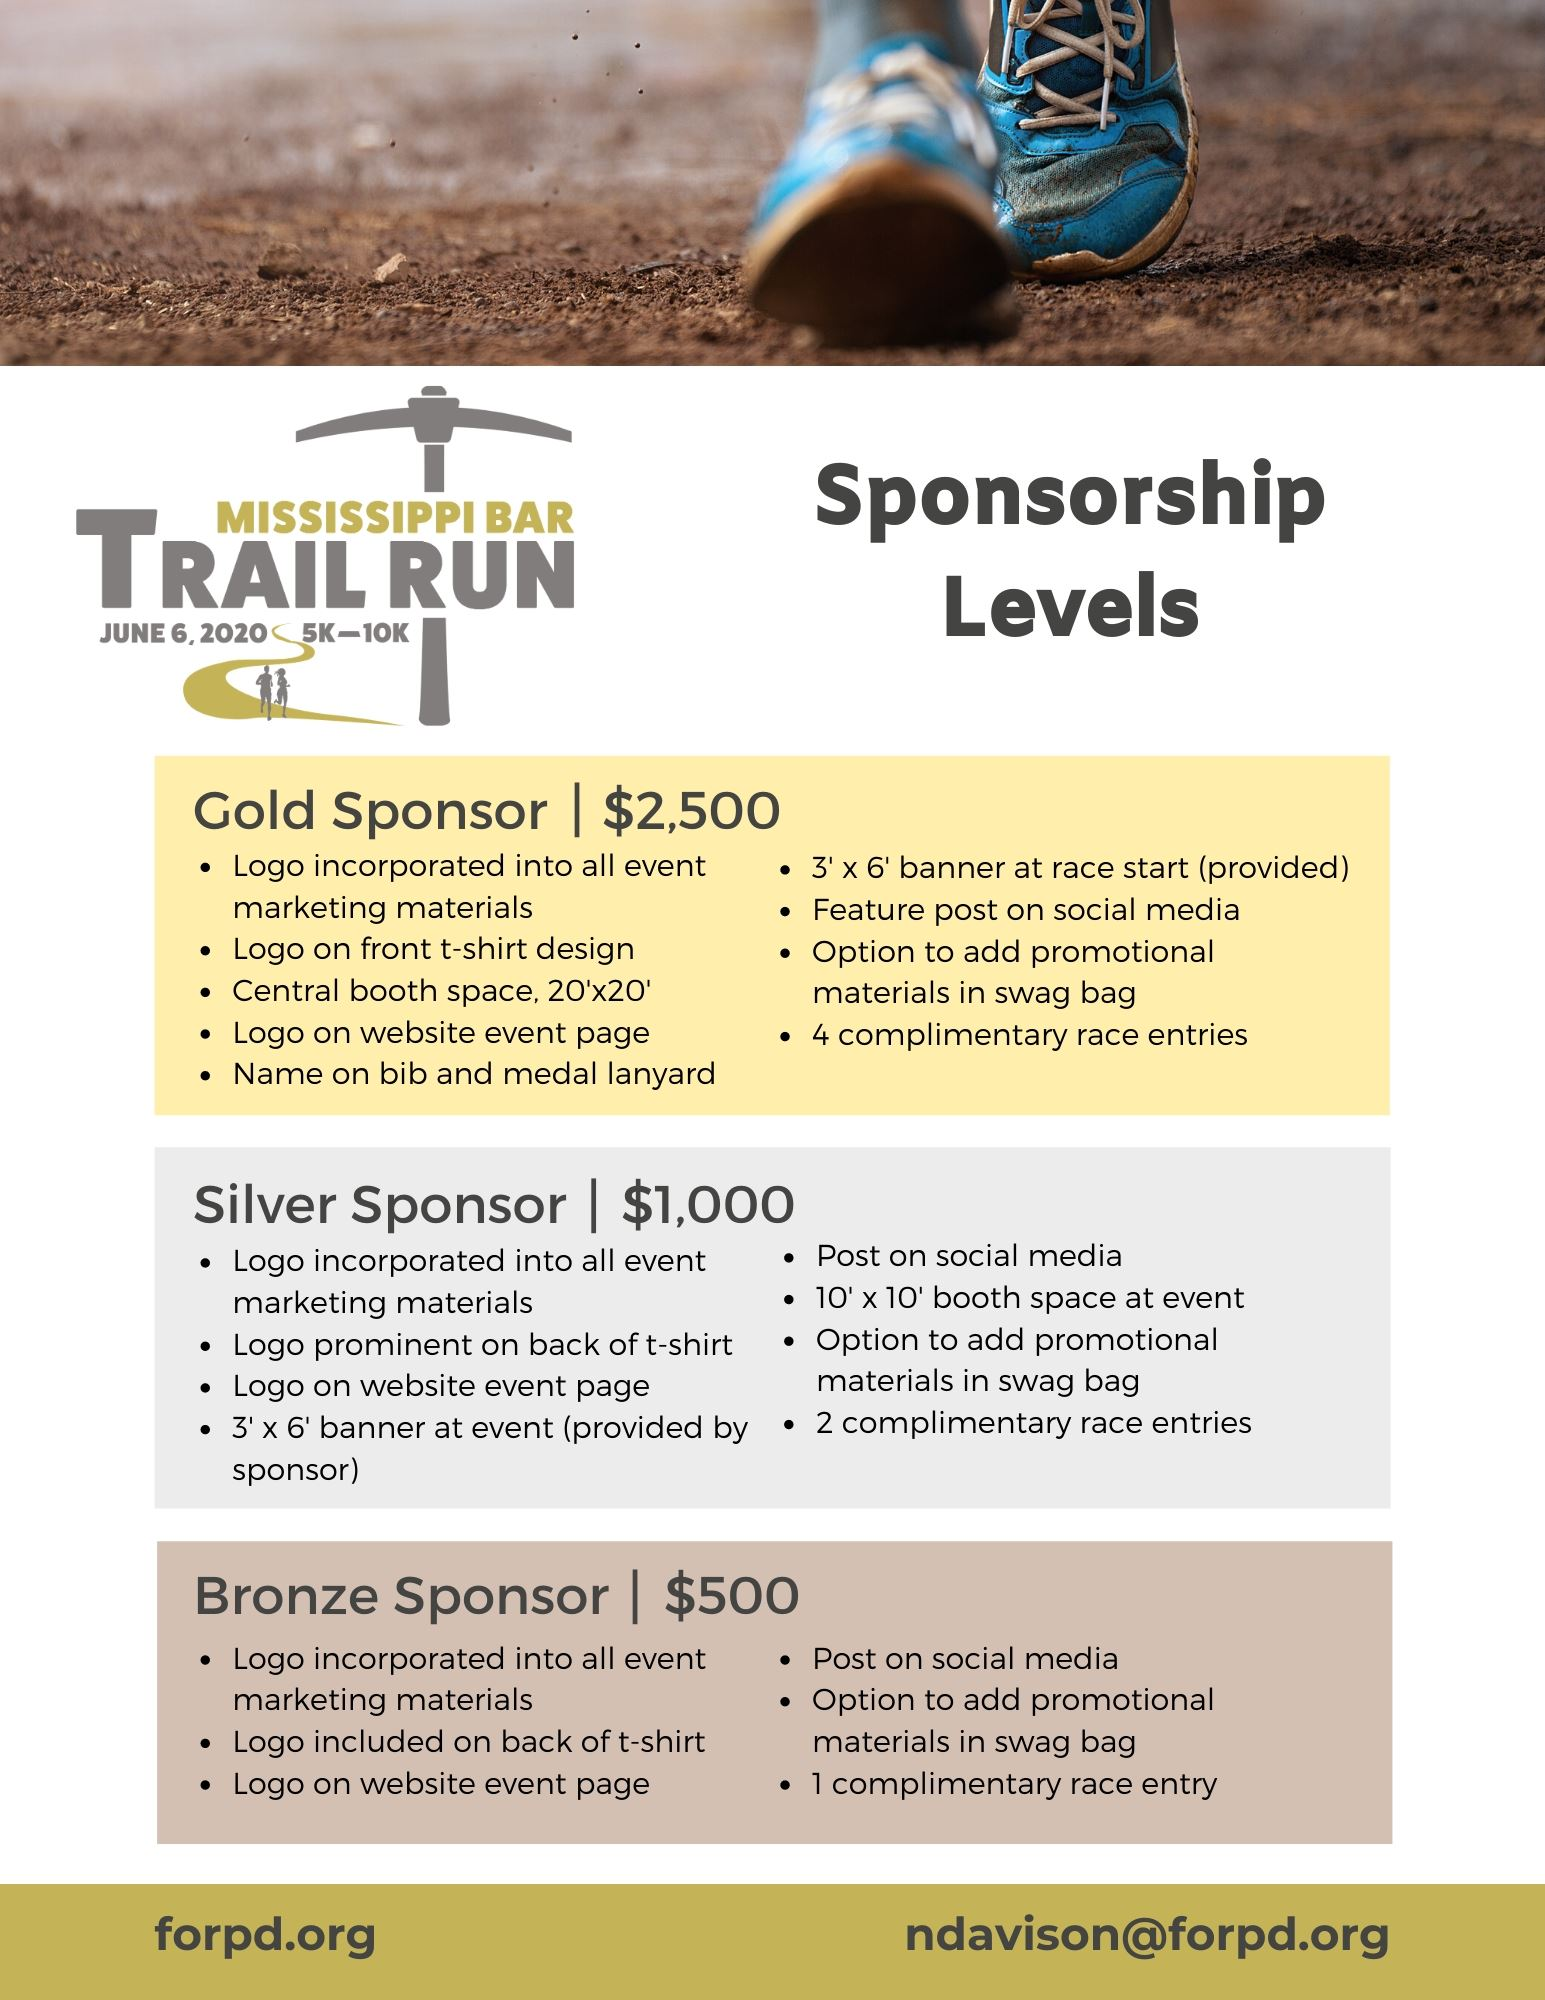 Mississippi Bar Trail Run Sponsorship Packet